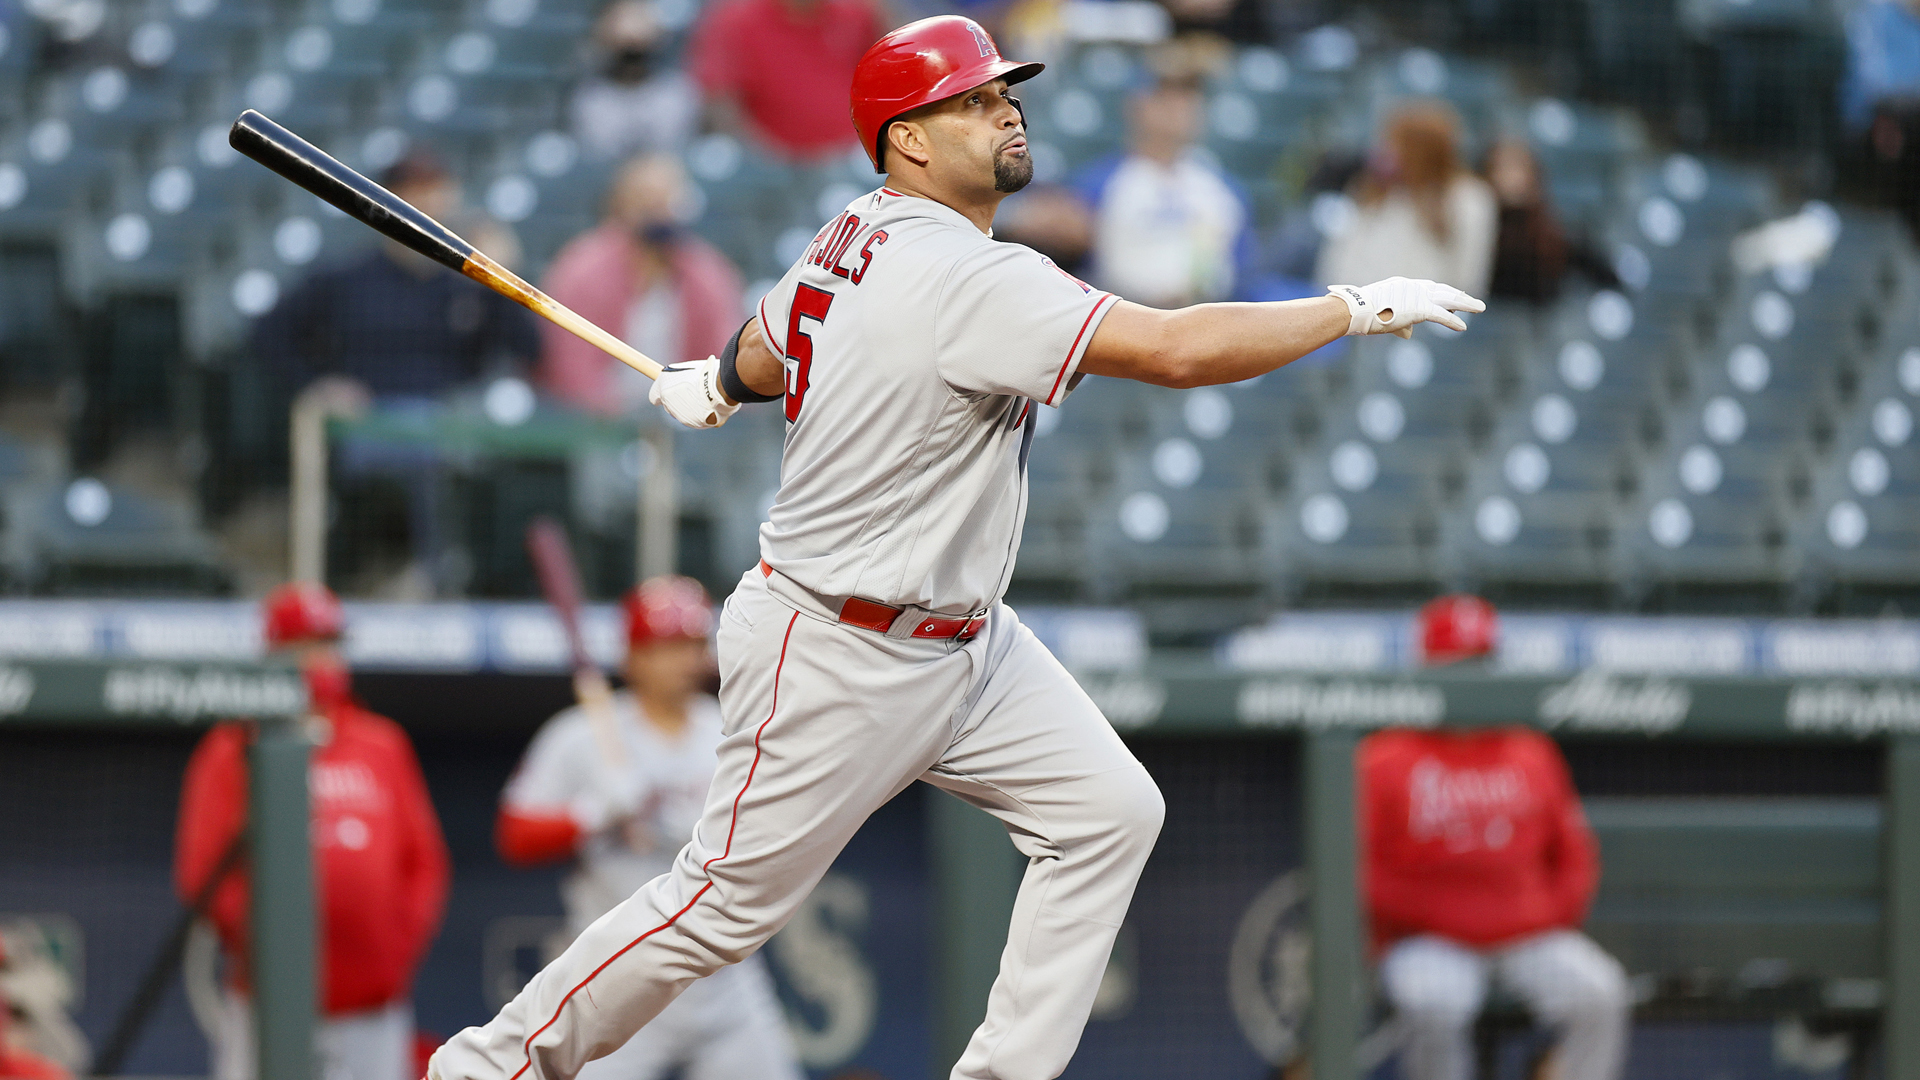 Albert Pujols bats against the Seattle Mariners in the second inning at T-Mobile Park on April 30, 2021 in Seattle. (Steph Chambers/Getty Images)